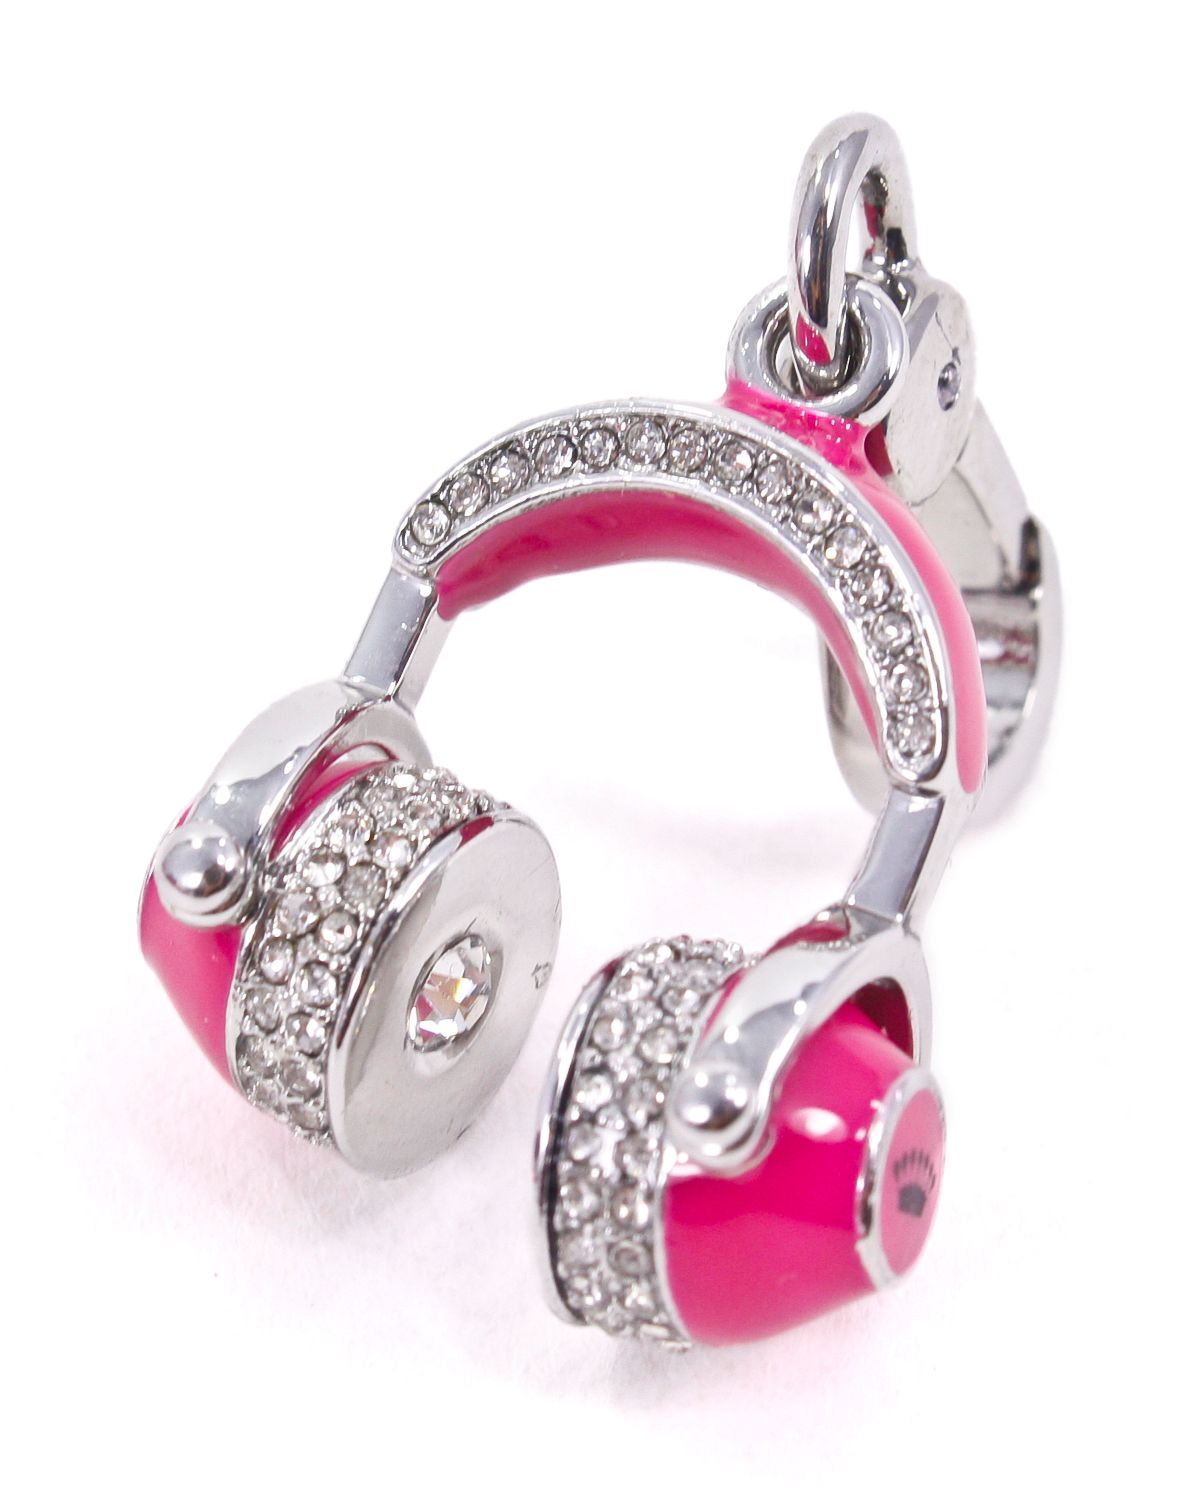 Details About Juicy Couture Pink Headphones Charm New